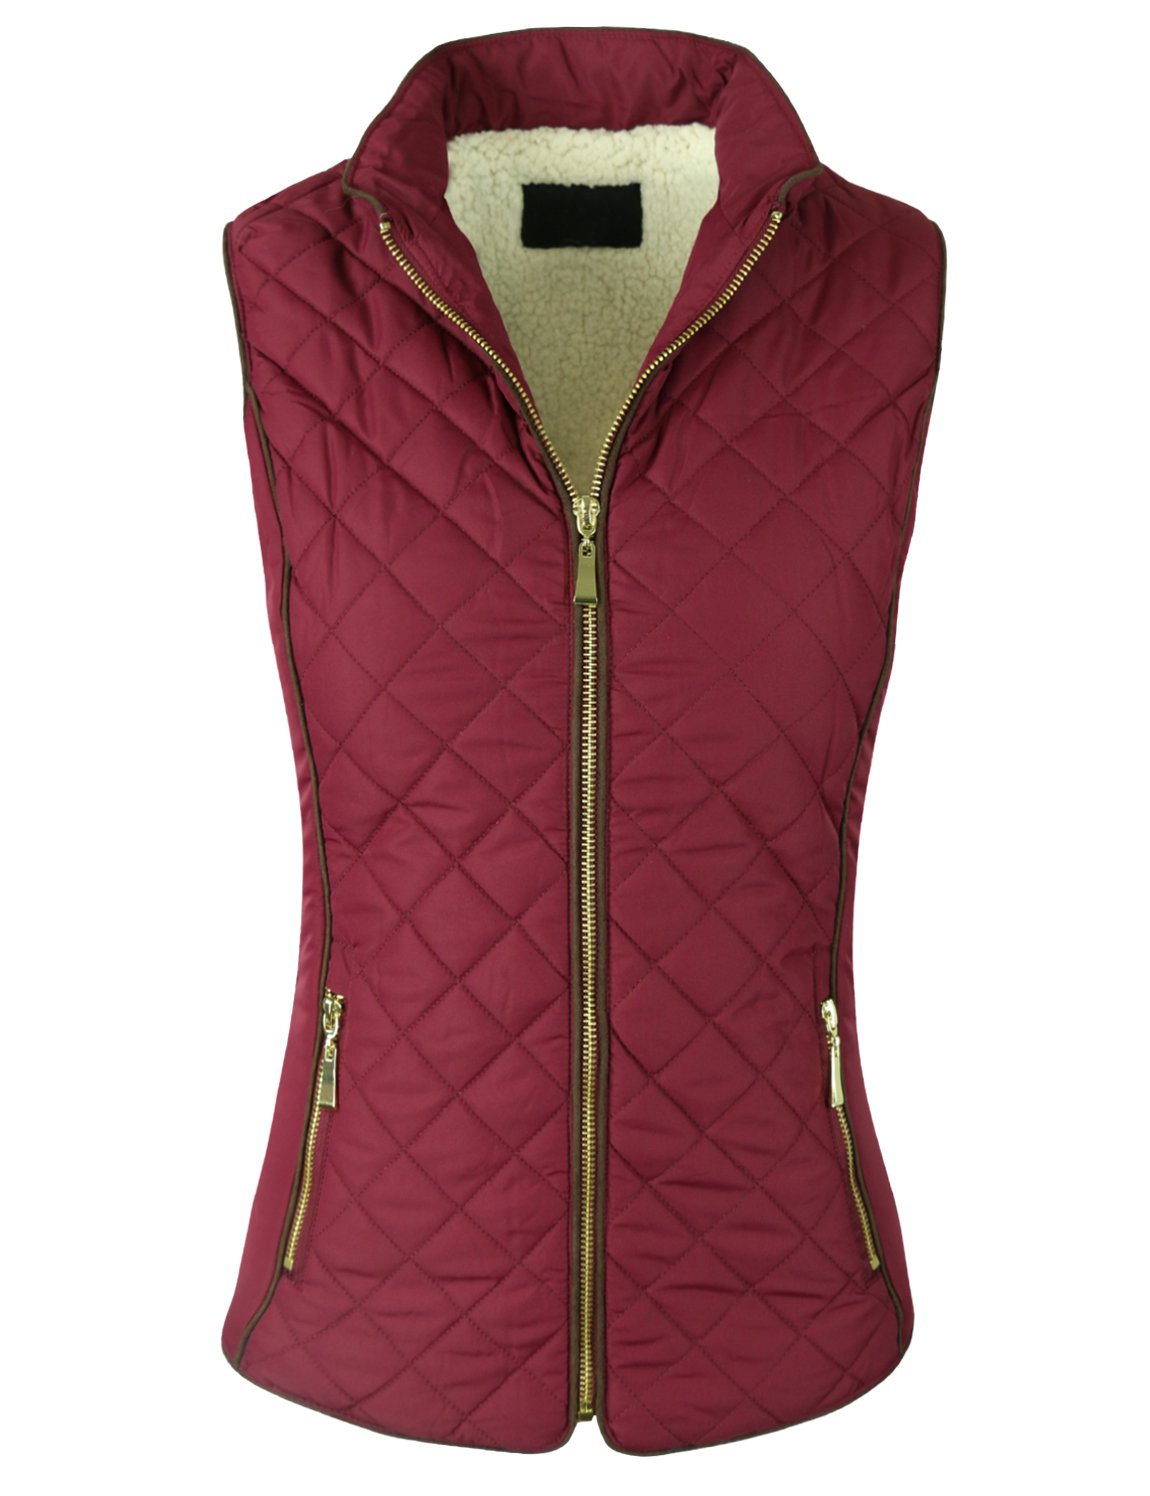 makeitmint Women's Basic Solid Quilted Padding Jacket Vest w/ Pockets 1XL YJV0002_24BURGUNDY by makeitmint